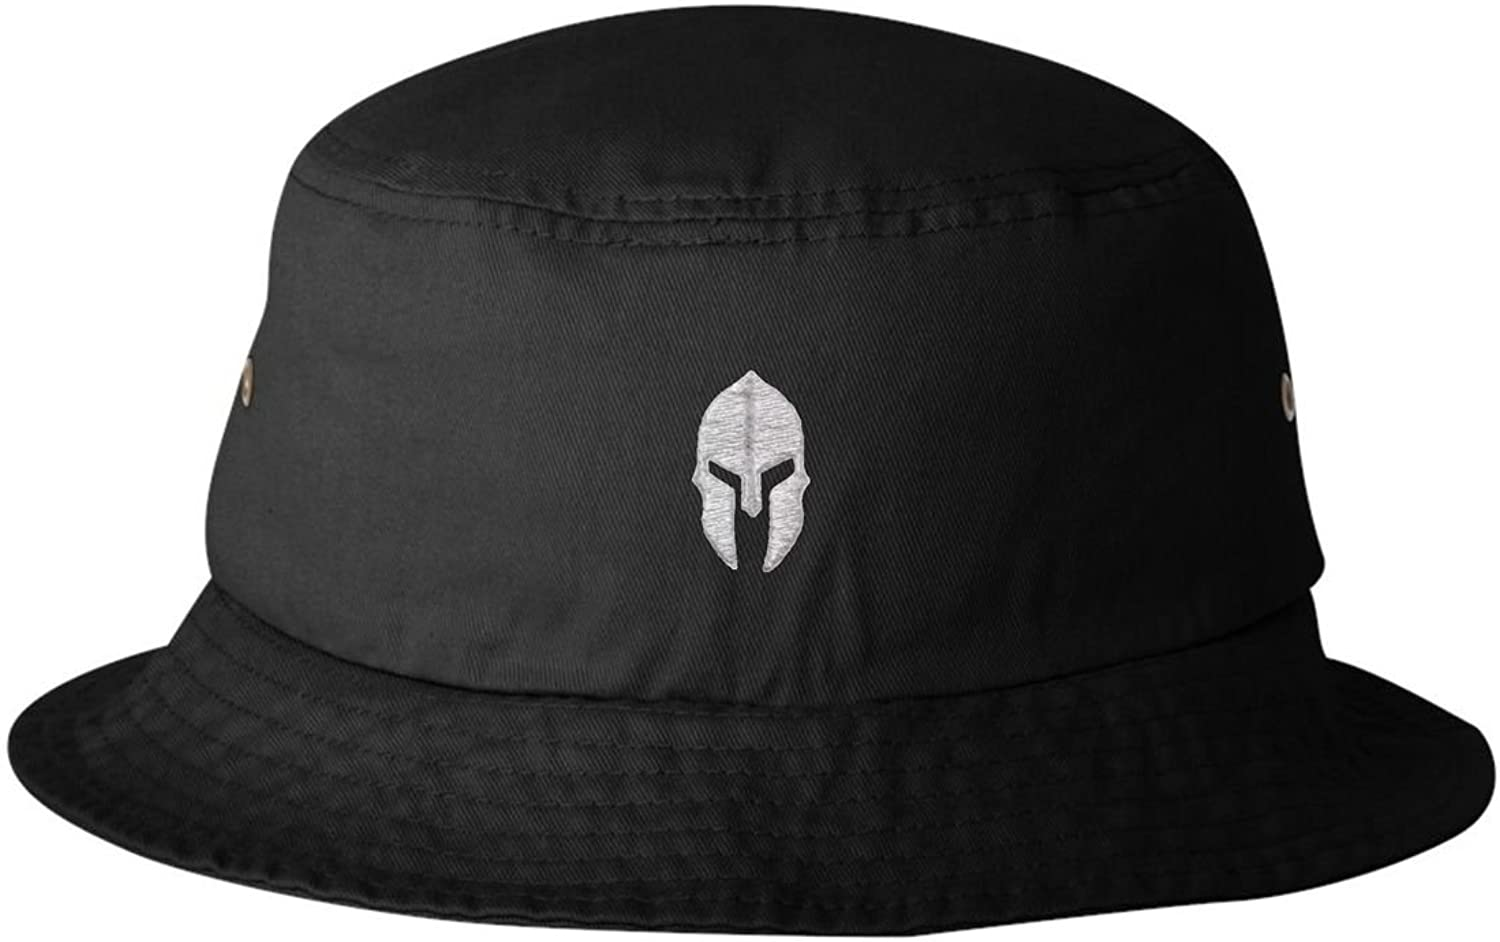 Adult Spartan Warrior Helmet Embroidered Bucket Cap Dad Hat